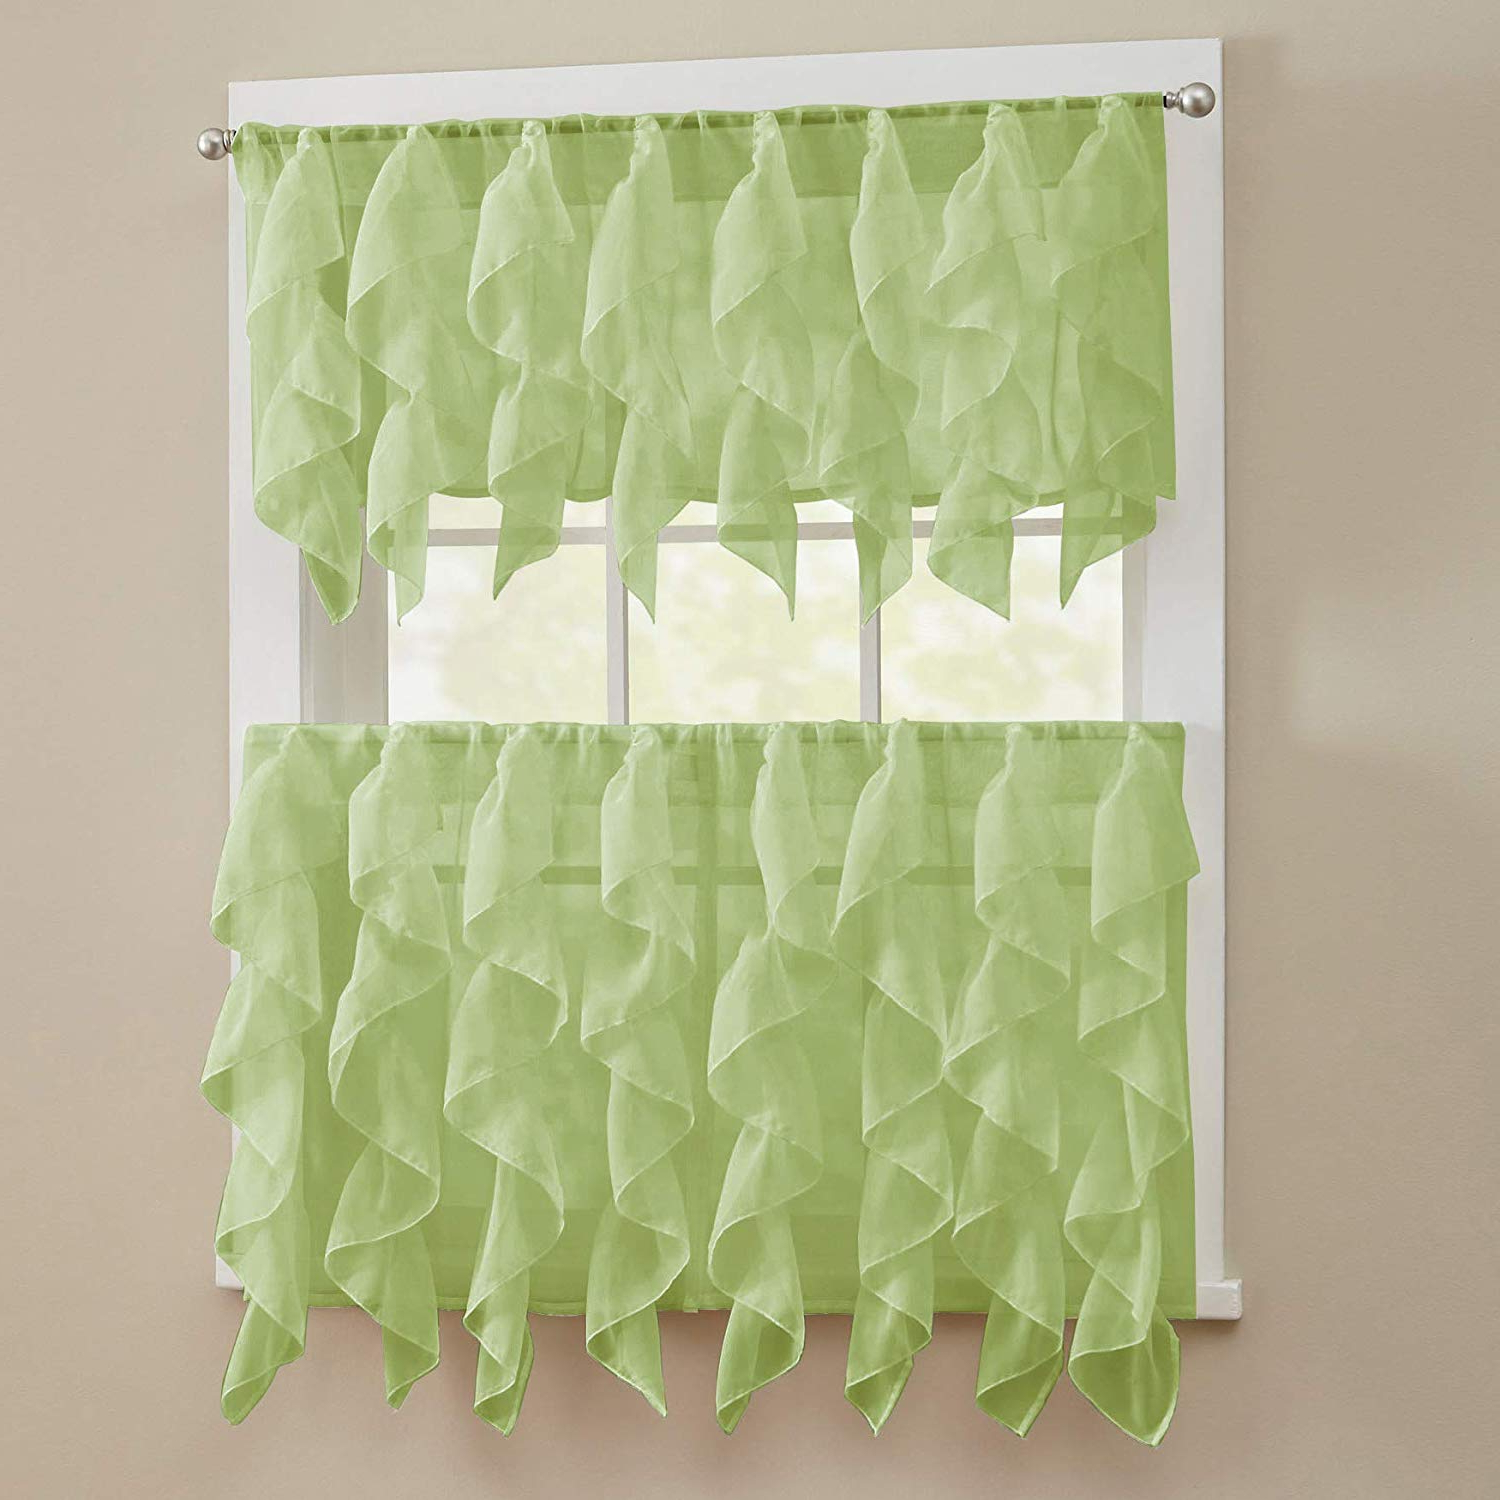 "Most Recent Sweet Home Collection 3 Piece Kitchen Curtain Set Sheet Vertical Cascading  Waterfall Ruffle Includes Valance & Choice Of 24"" Or 36"" Teir Pair, Tier, With Regard To Maize Vertical Ruffled Waterfall Valance And Curtain Tiers (Gallery 8 of 20)"